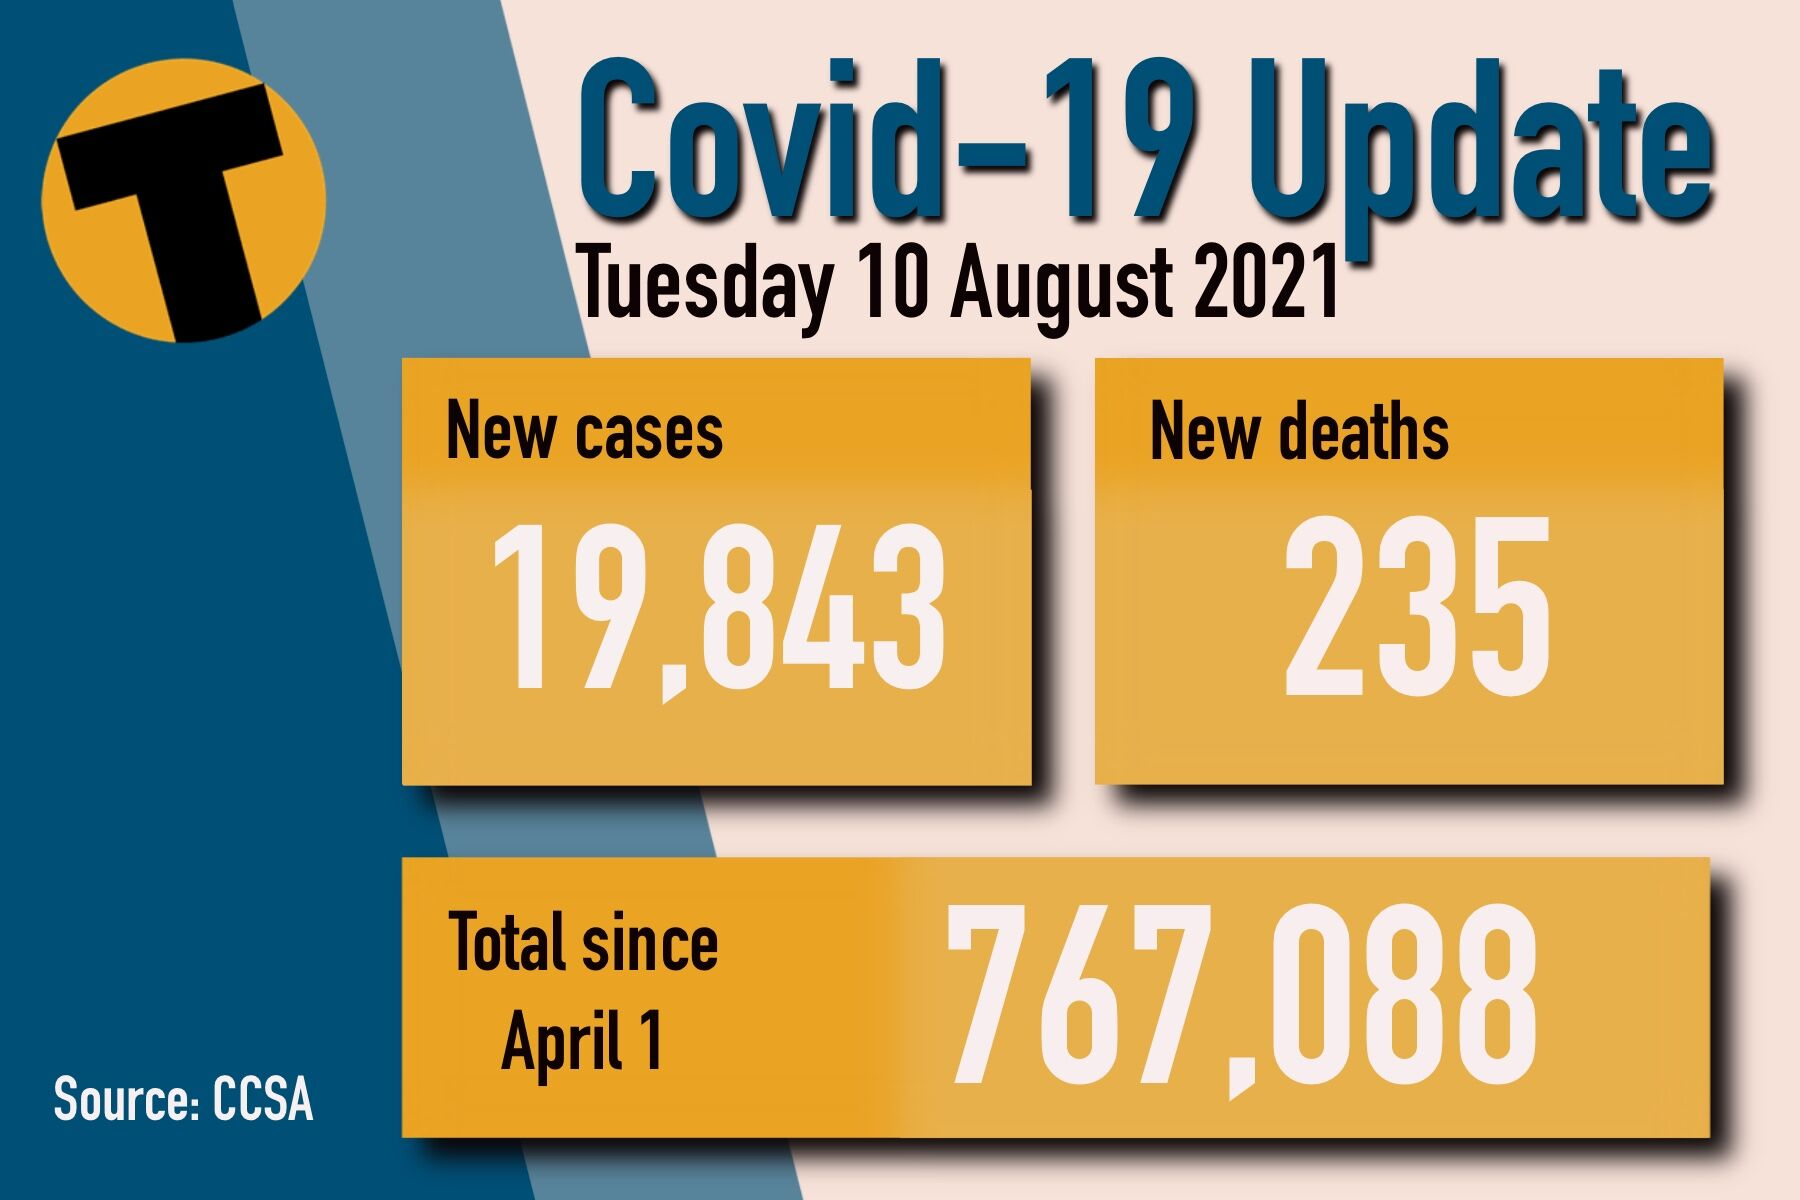 Tuesday Covid Update: 19,843 new cases and 235 deaths | News by Thaiger